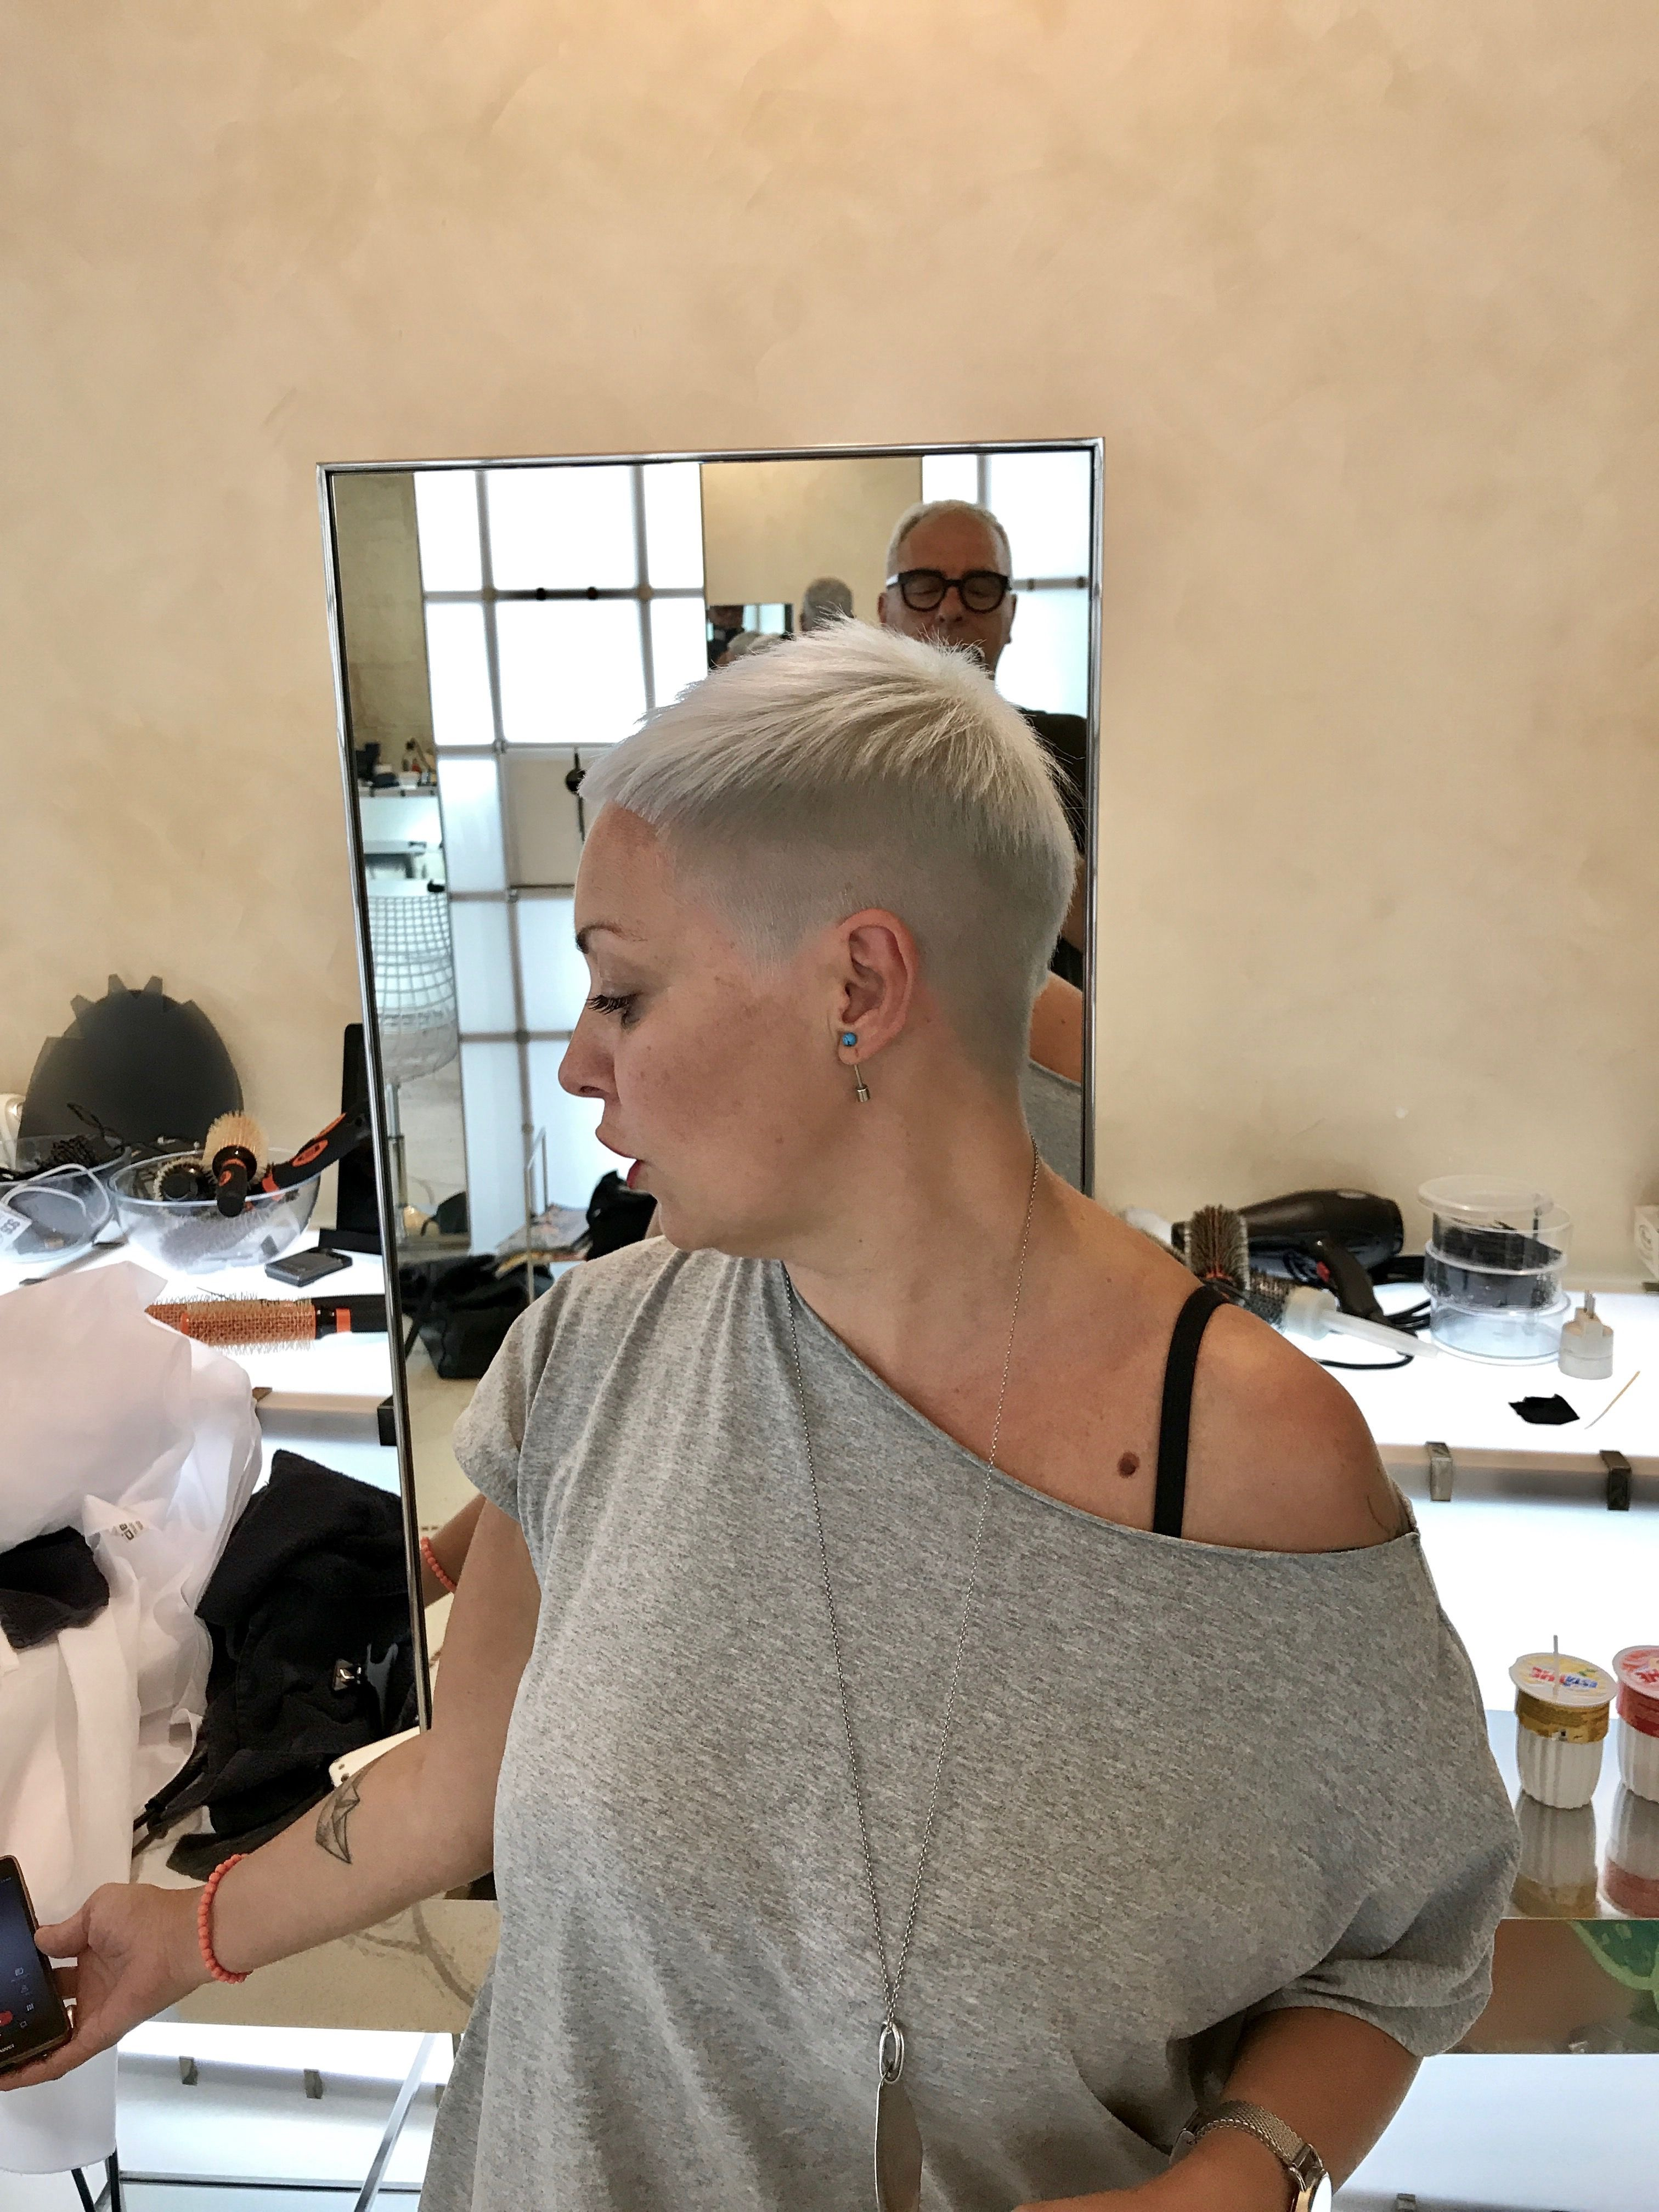 Pin by brian last on barbered in pinterest short hair